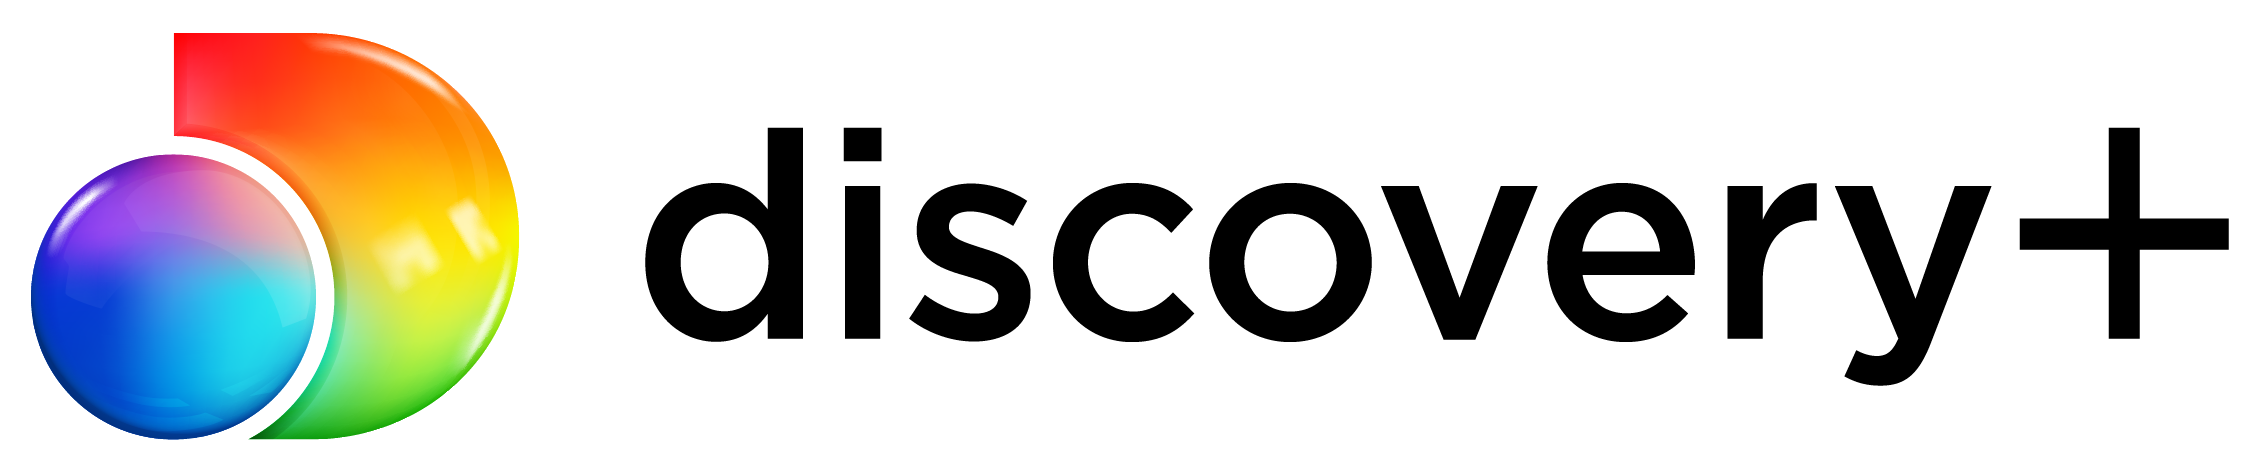 discovery+ - Logo.png